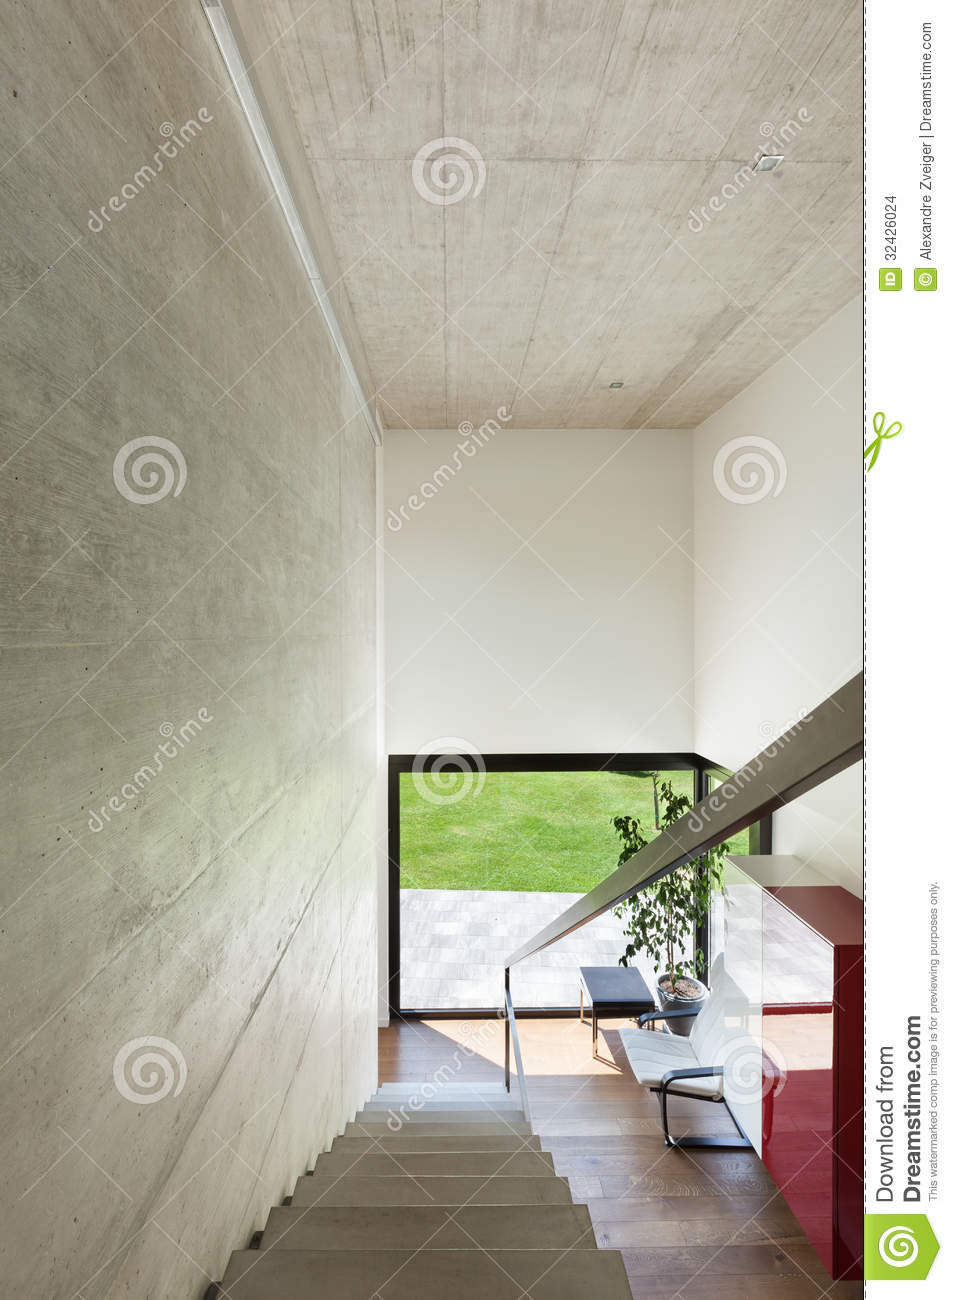 Villa moderne int rieur escaliers images stock image for Escalier moderne interieur